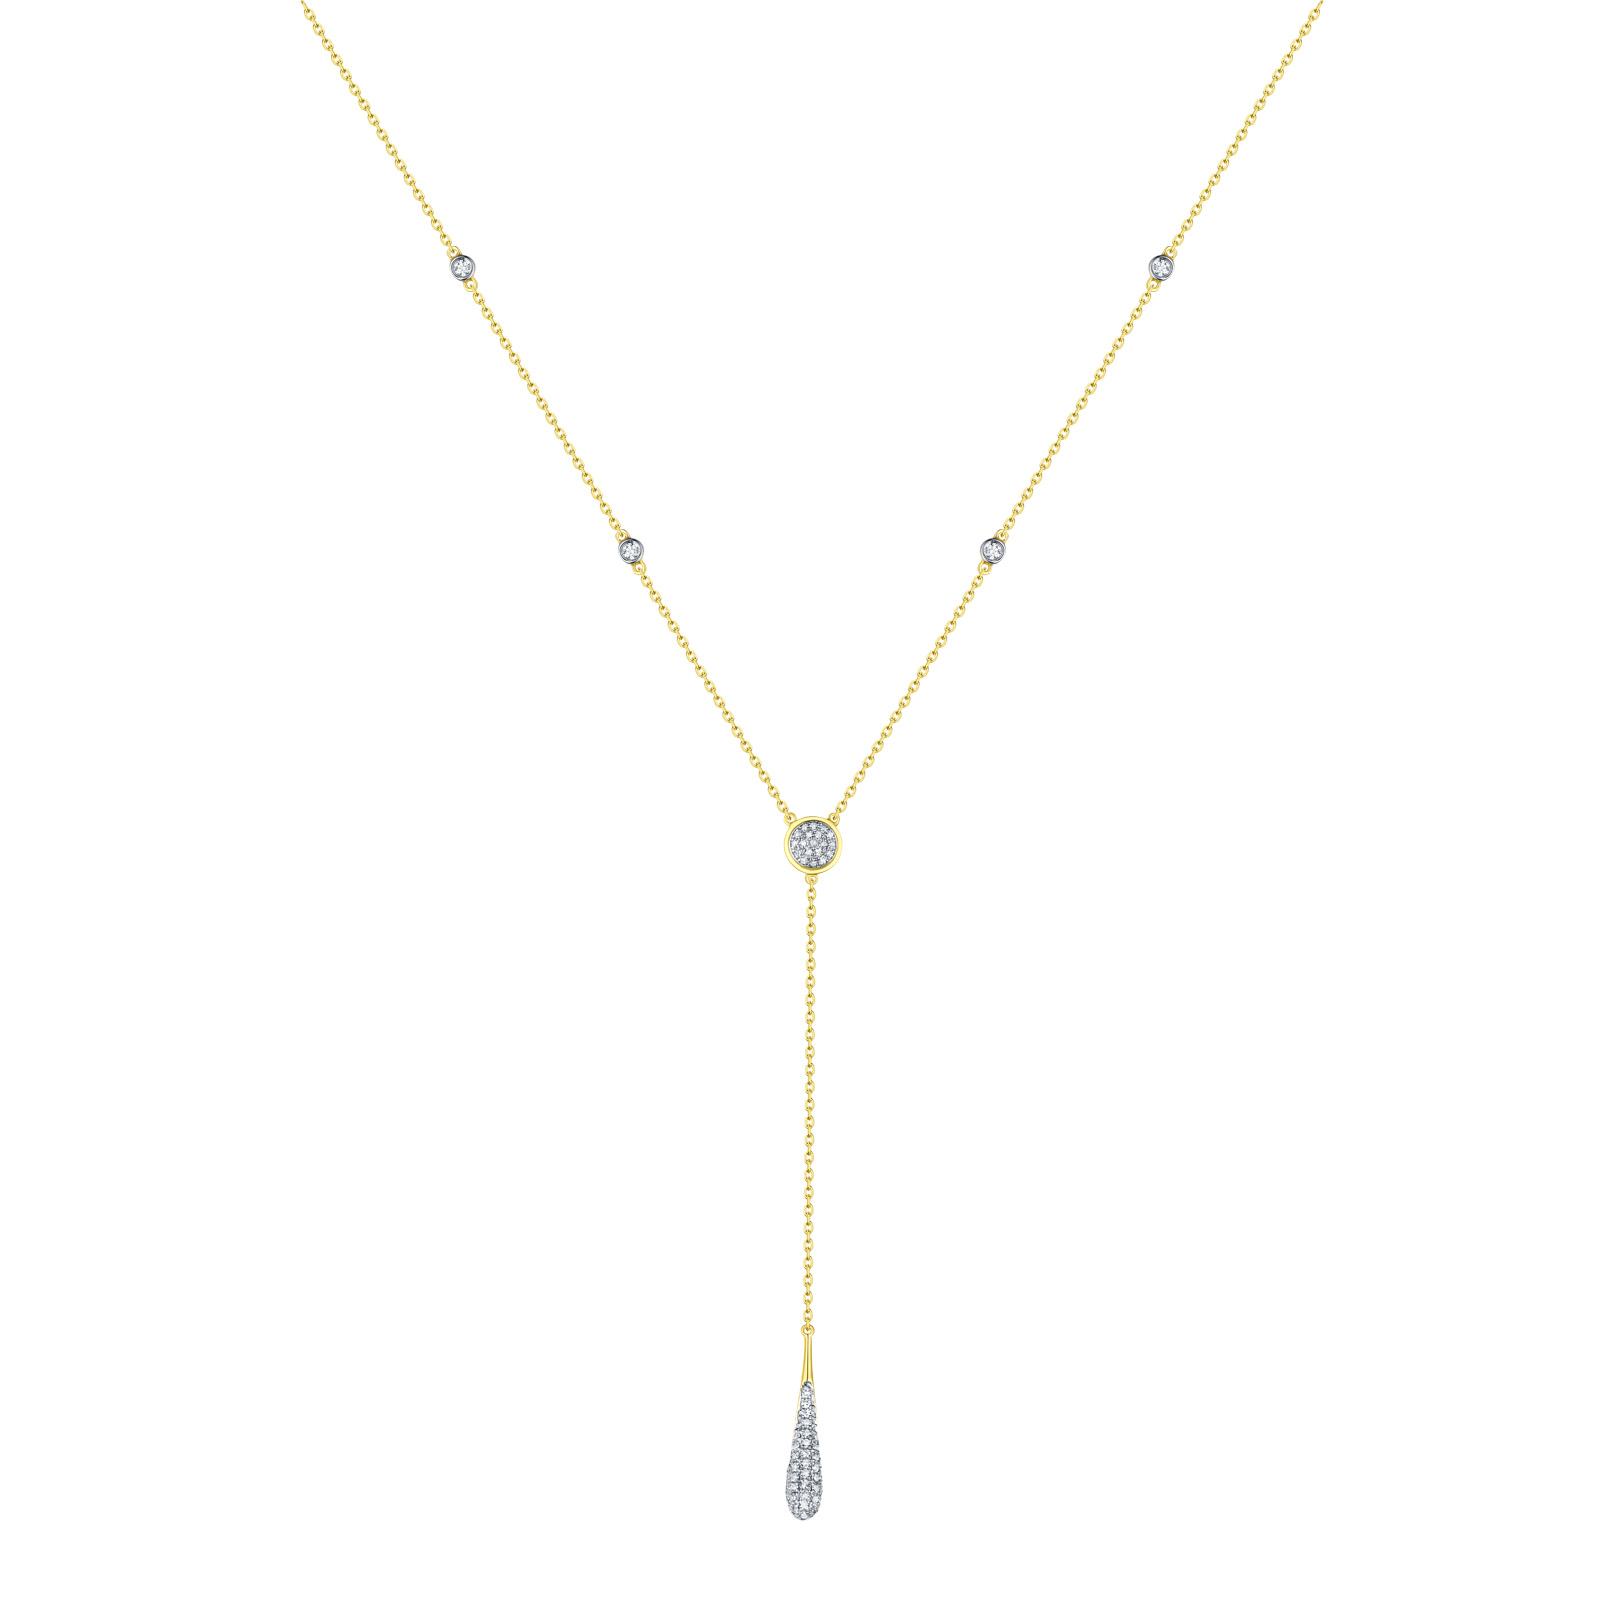 NL25999WHT – 14K Yellow Gold Diamond Necklace, 0.17 TCW